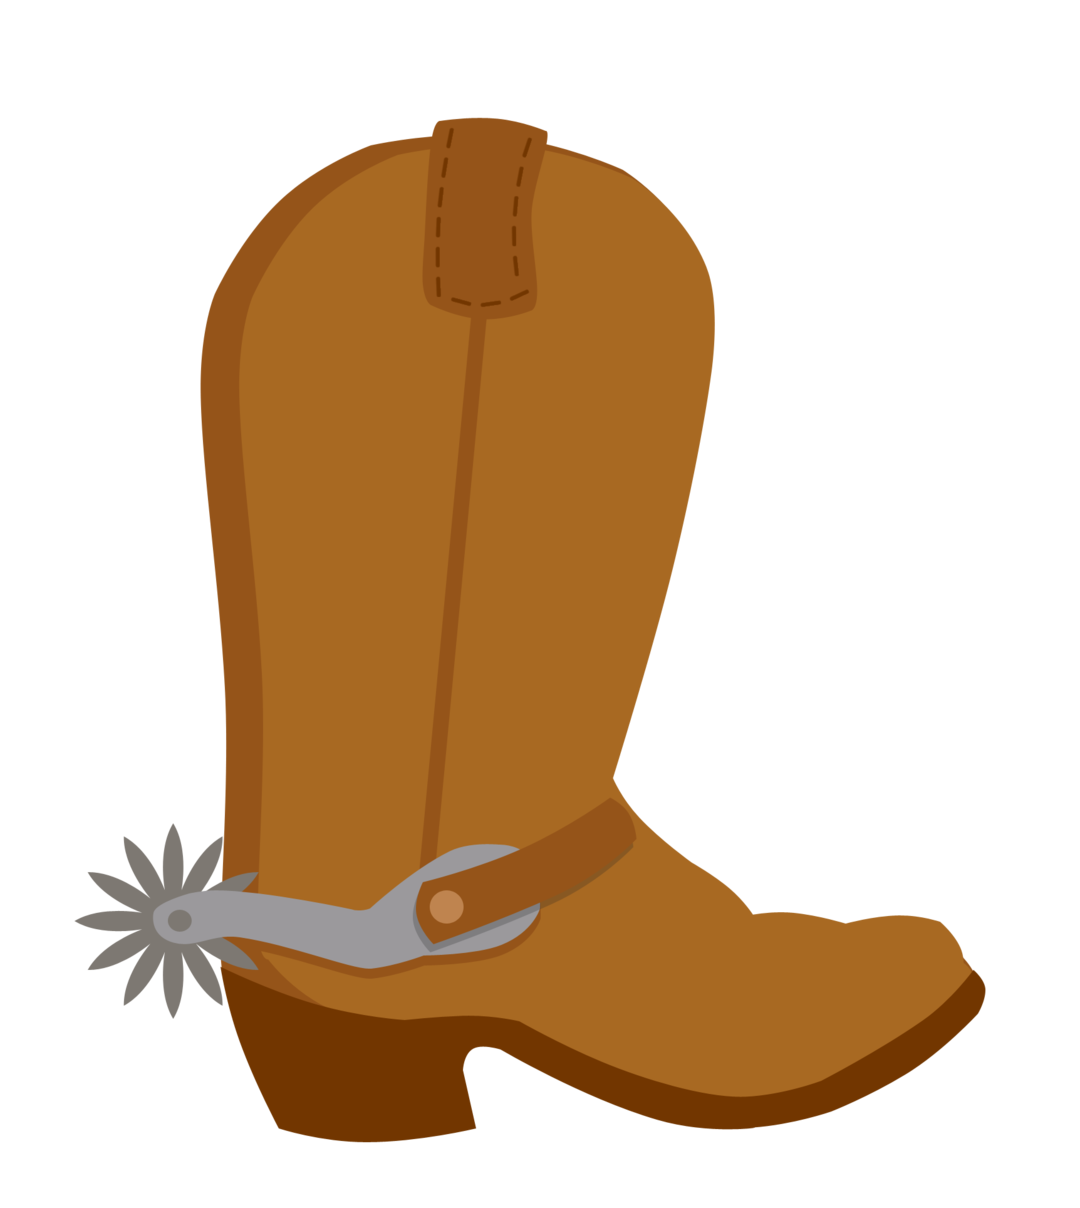 Bota boot country western. Clipart frame cowboy